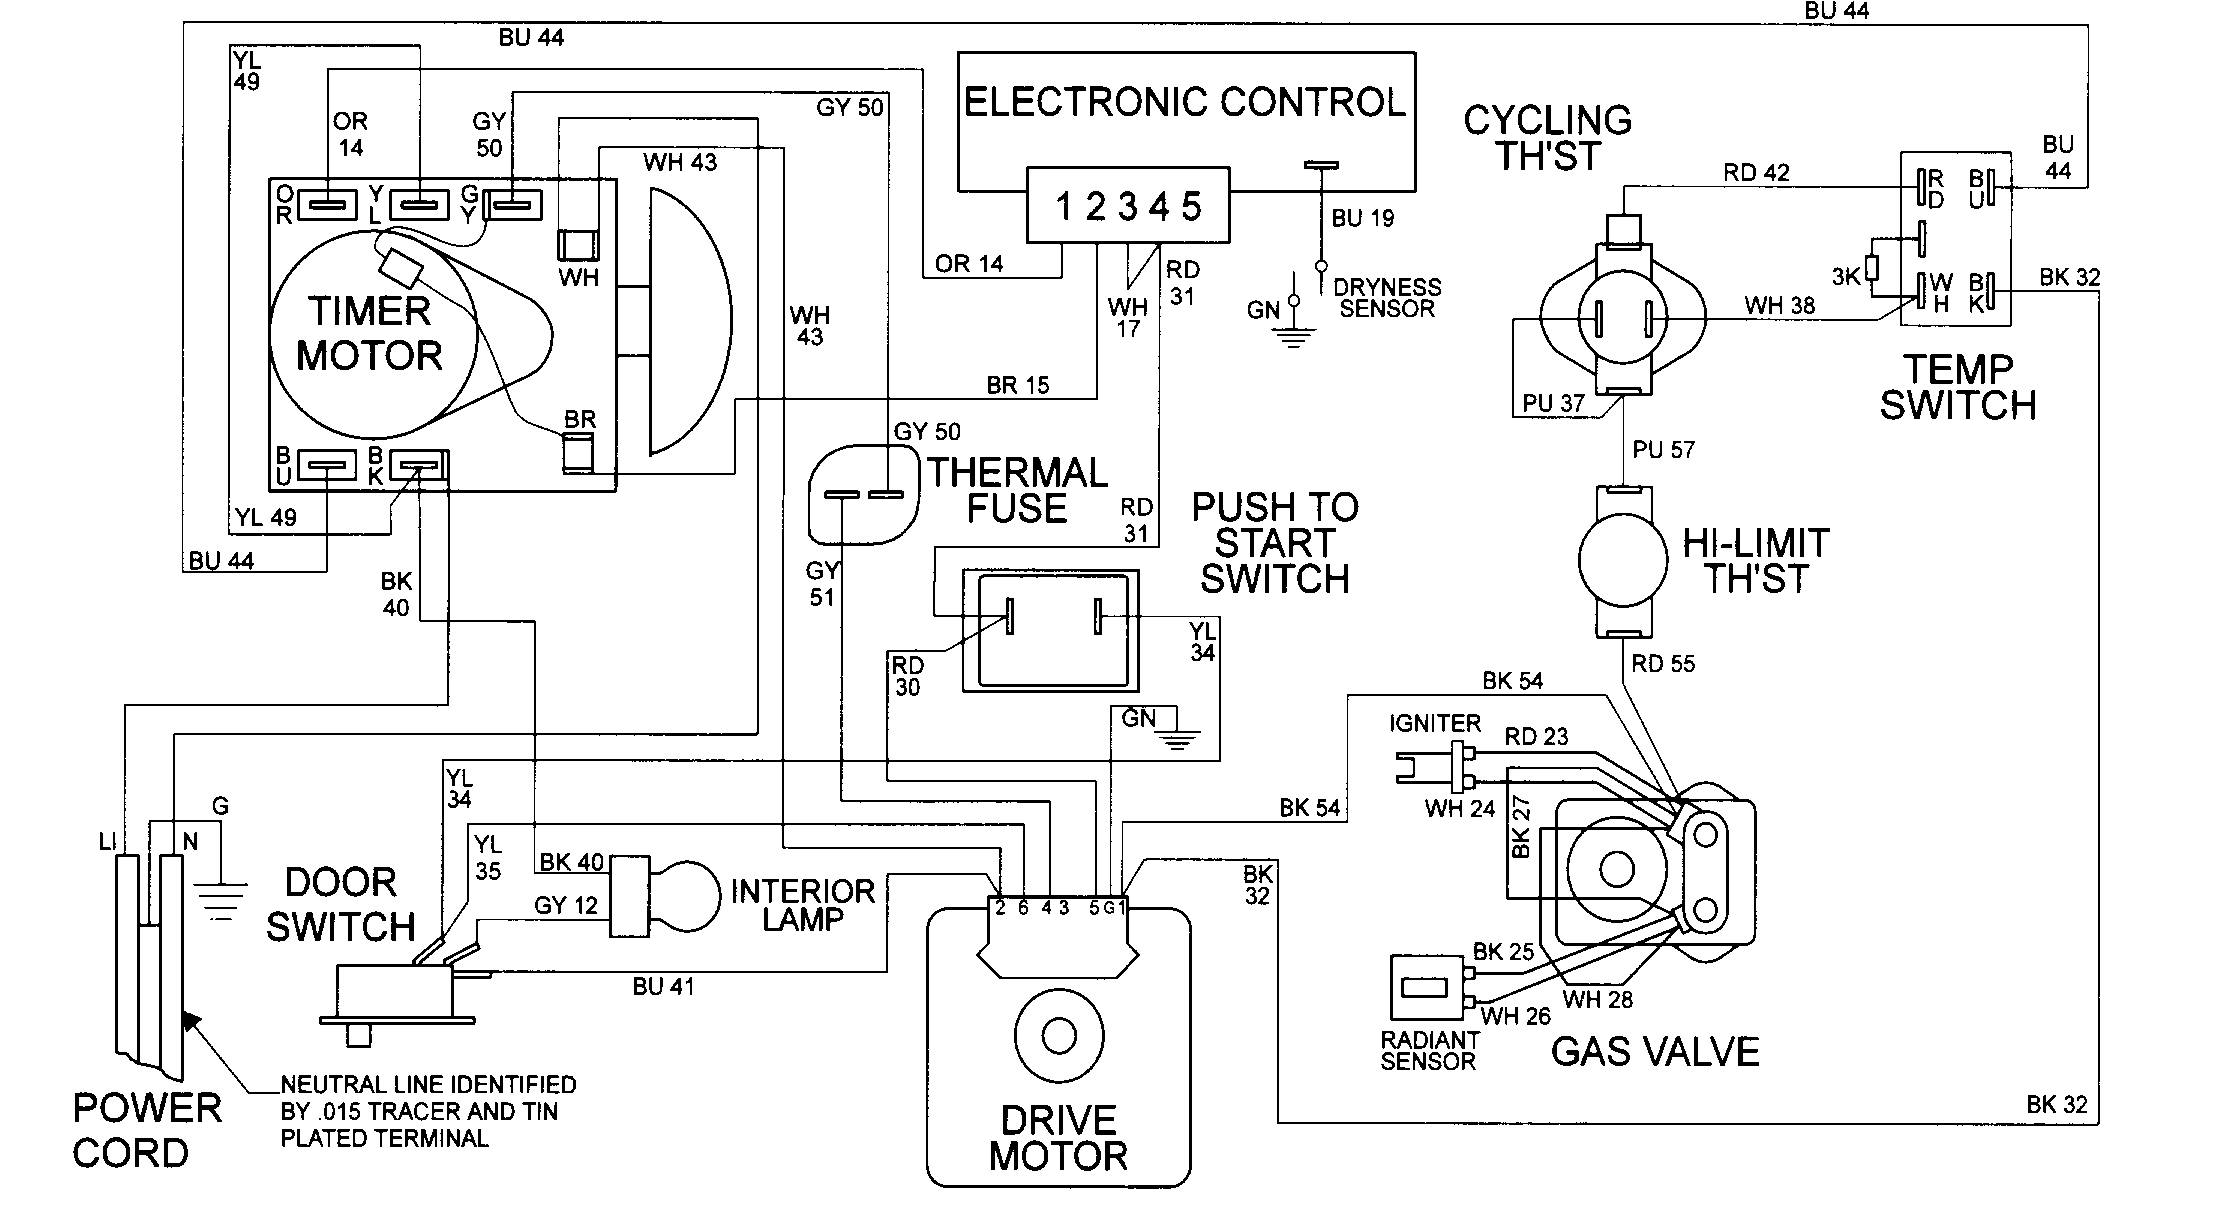 Maytag Dryer Motor Wiring Diagram 33 Images Kenmore 80 Series Electric For Diagrams M0407320 00007resize8402c453